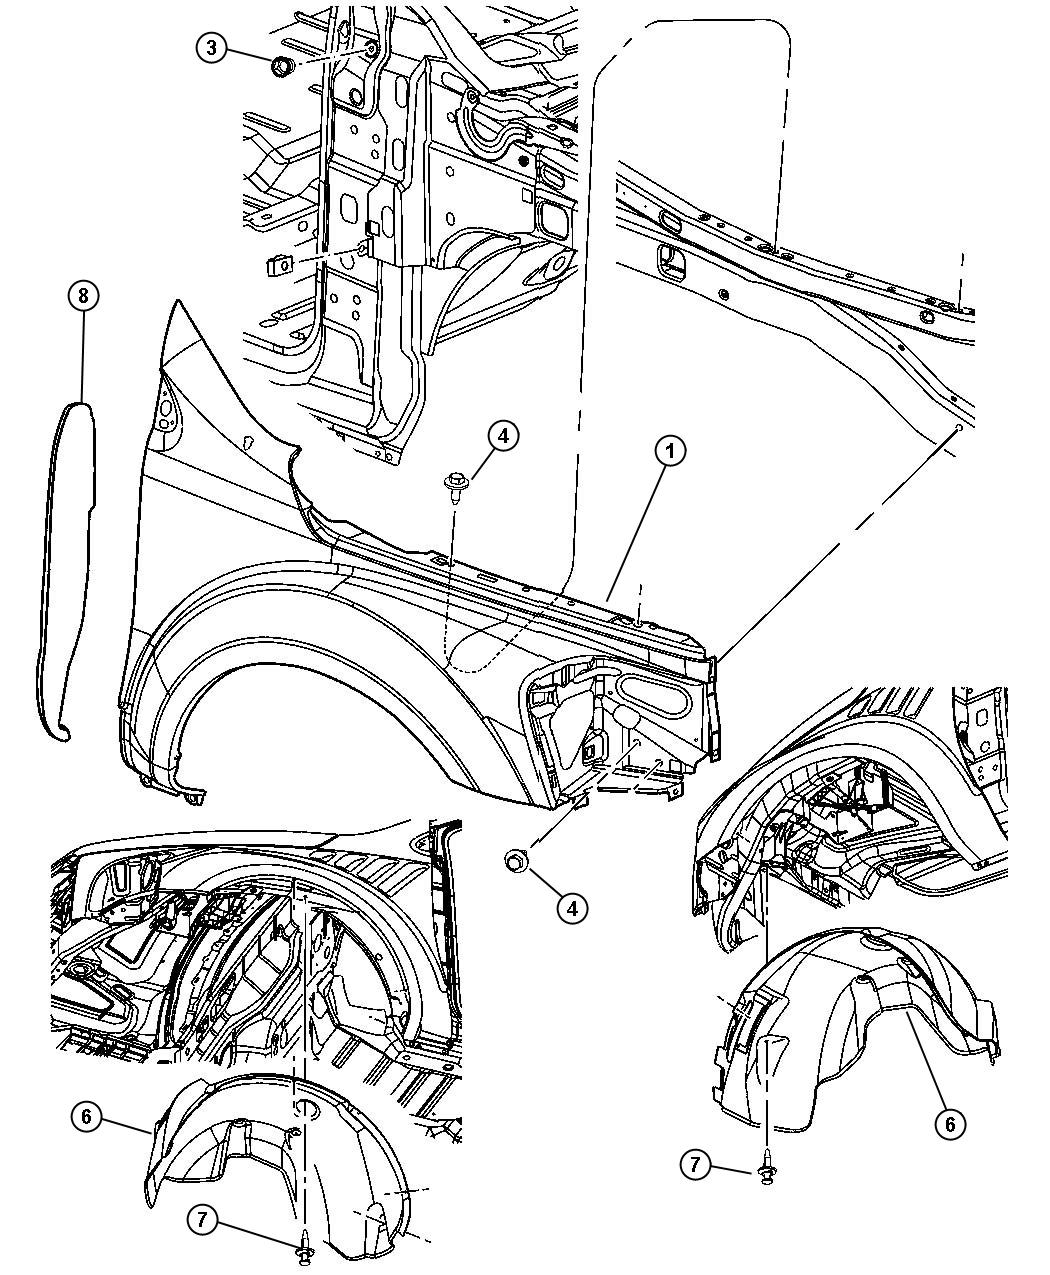 Chrysler Aspen Used For Screw And Washer Self Tapping